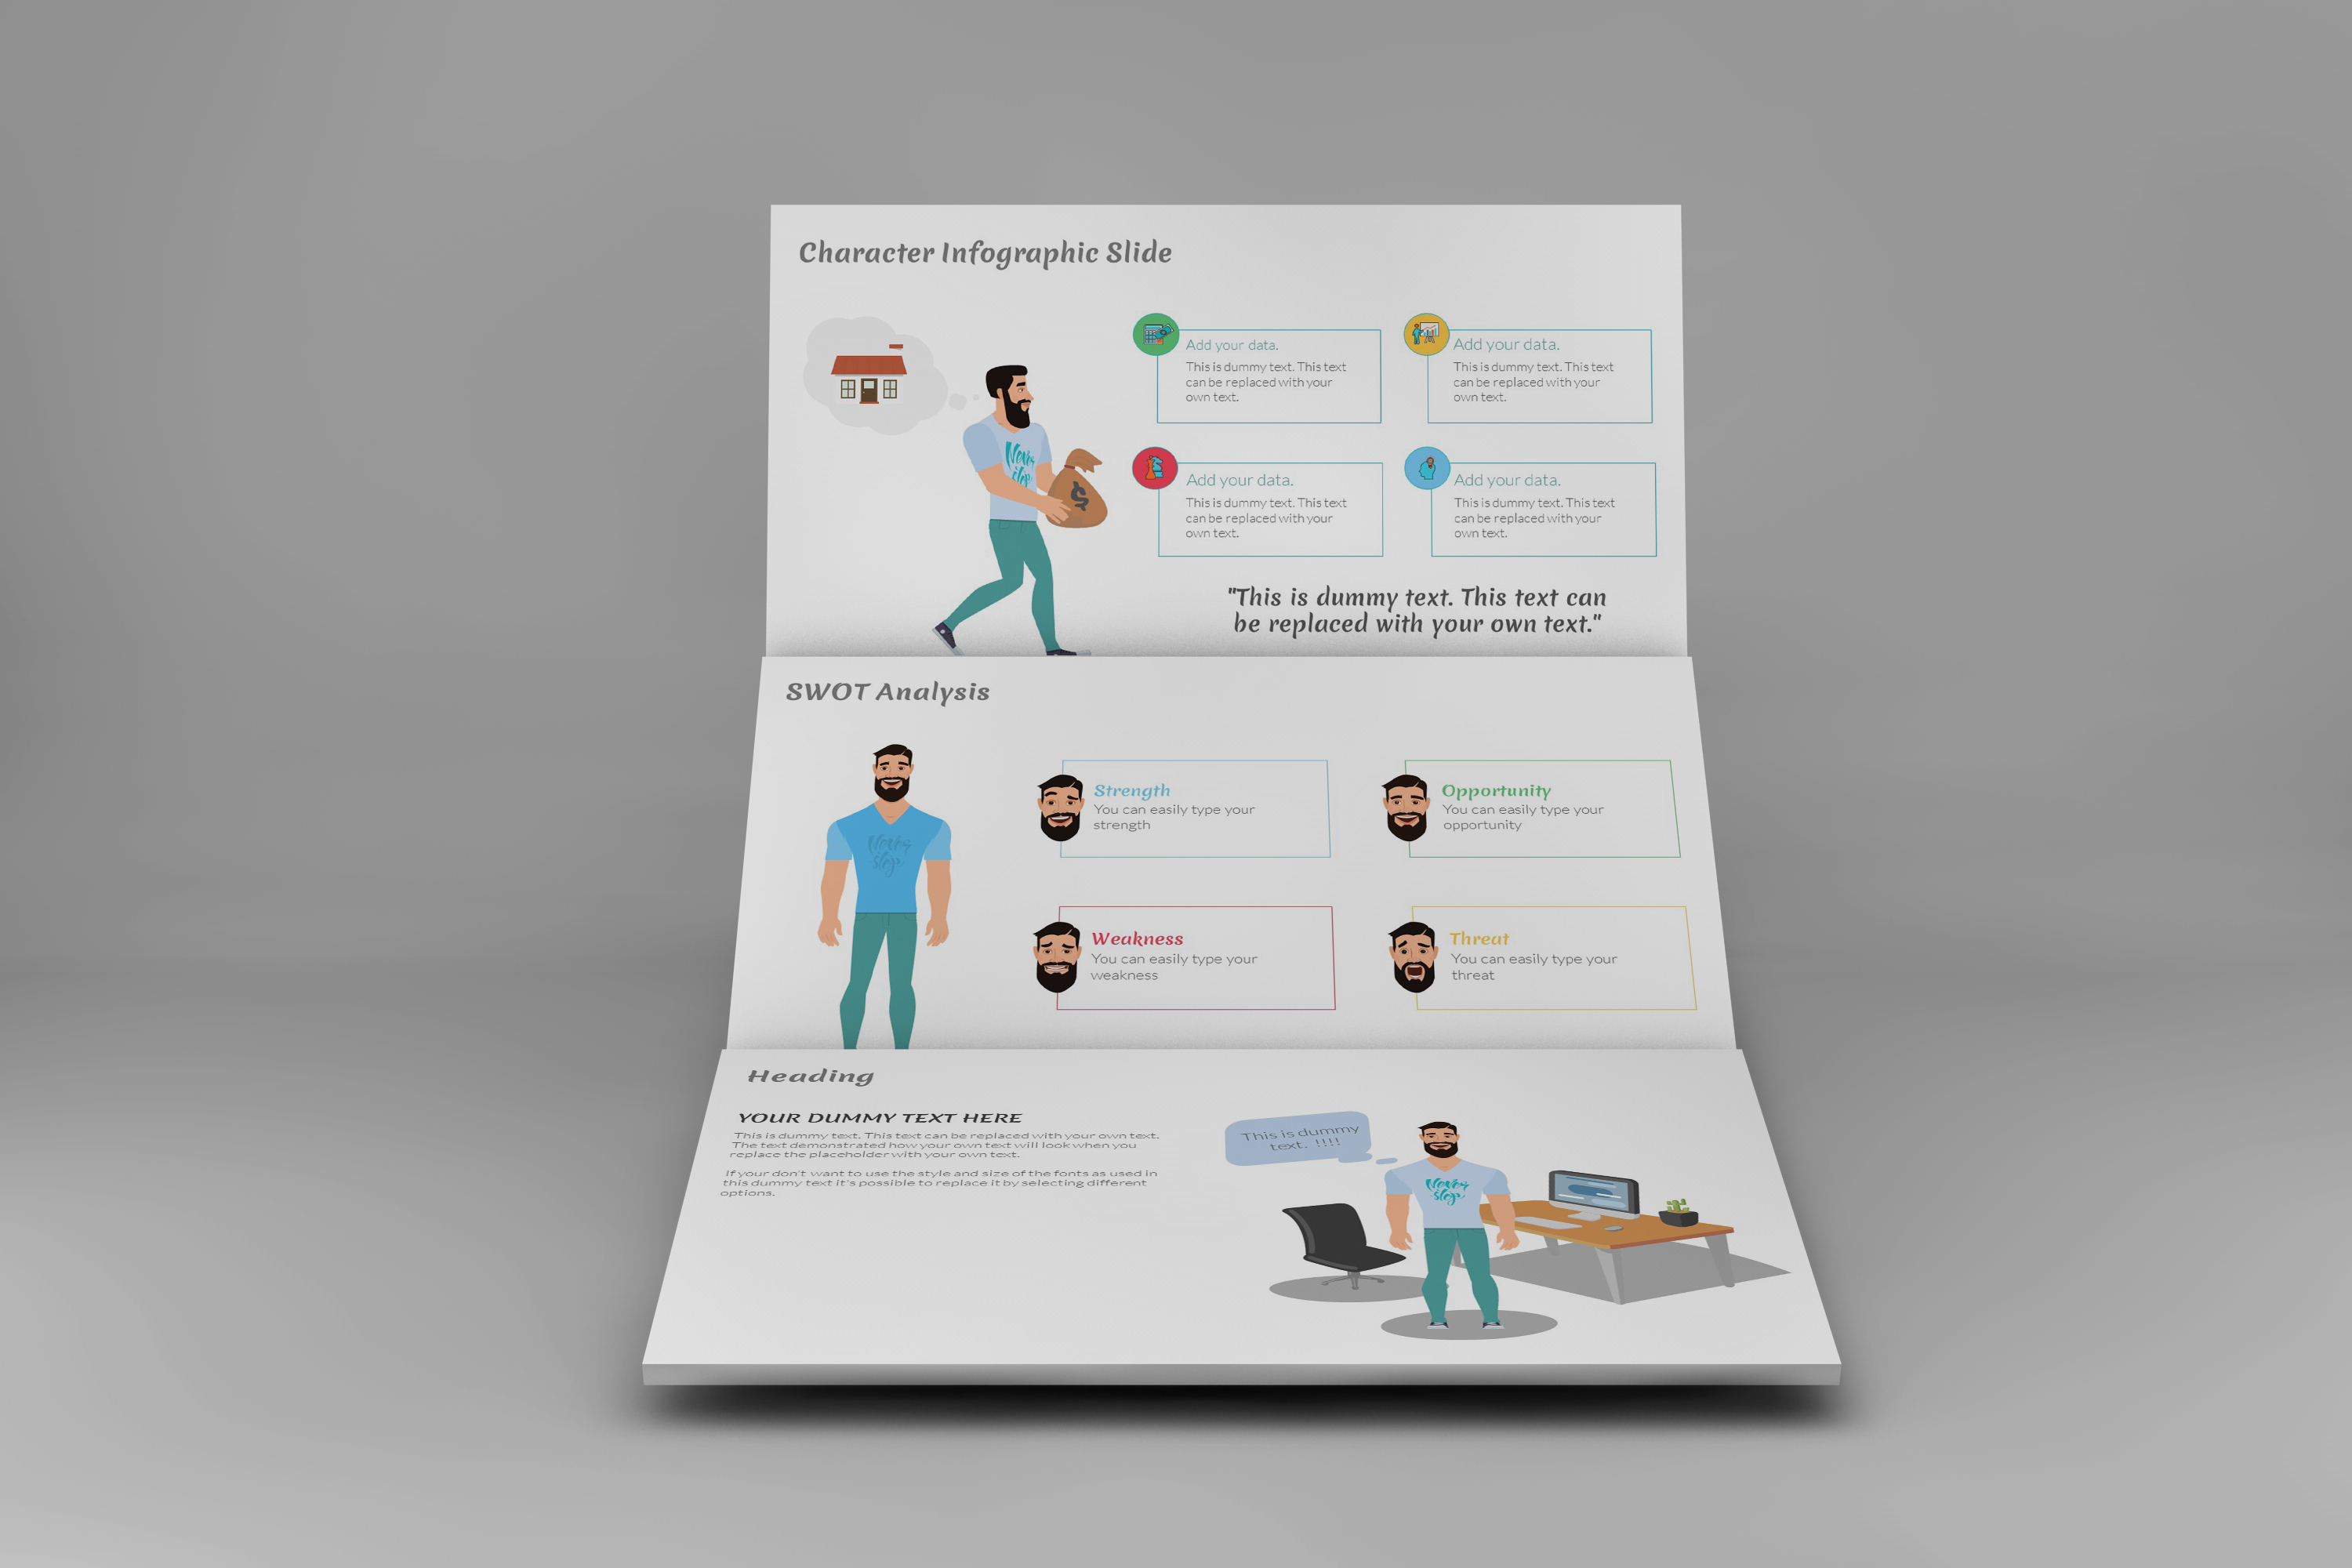 E-Trainer PowerPoint Template 1 example image 4